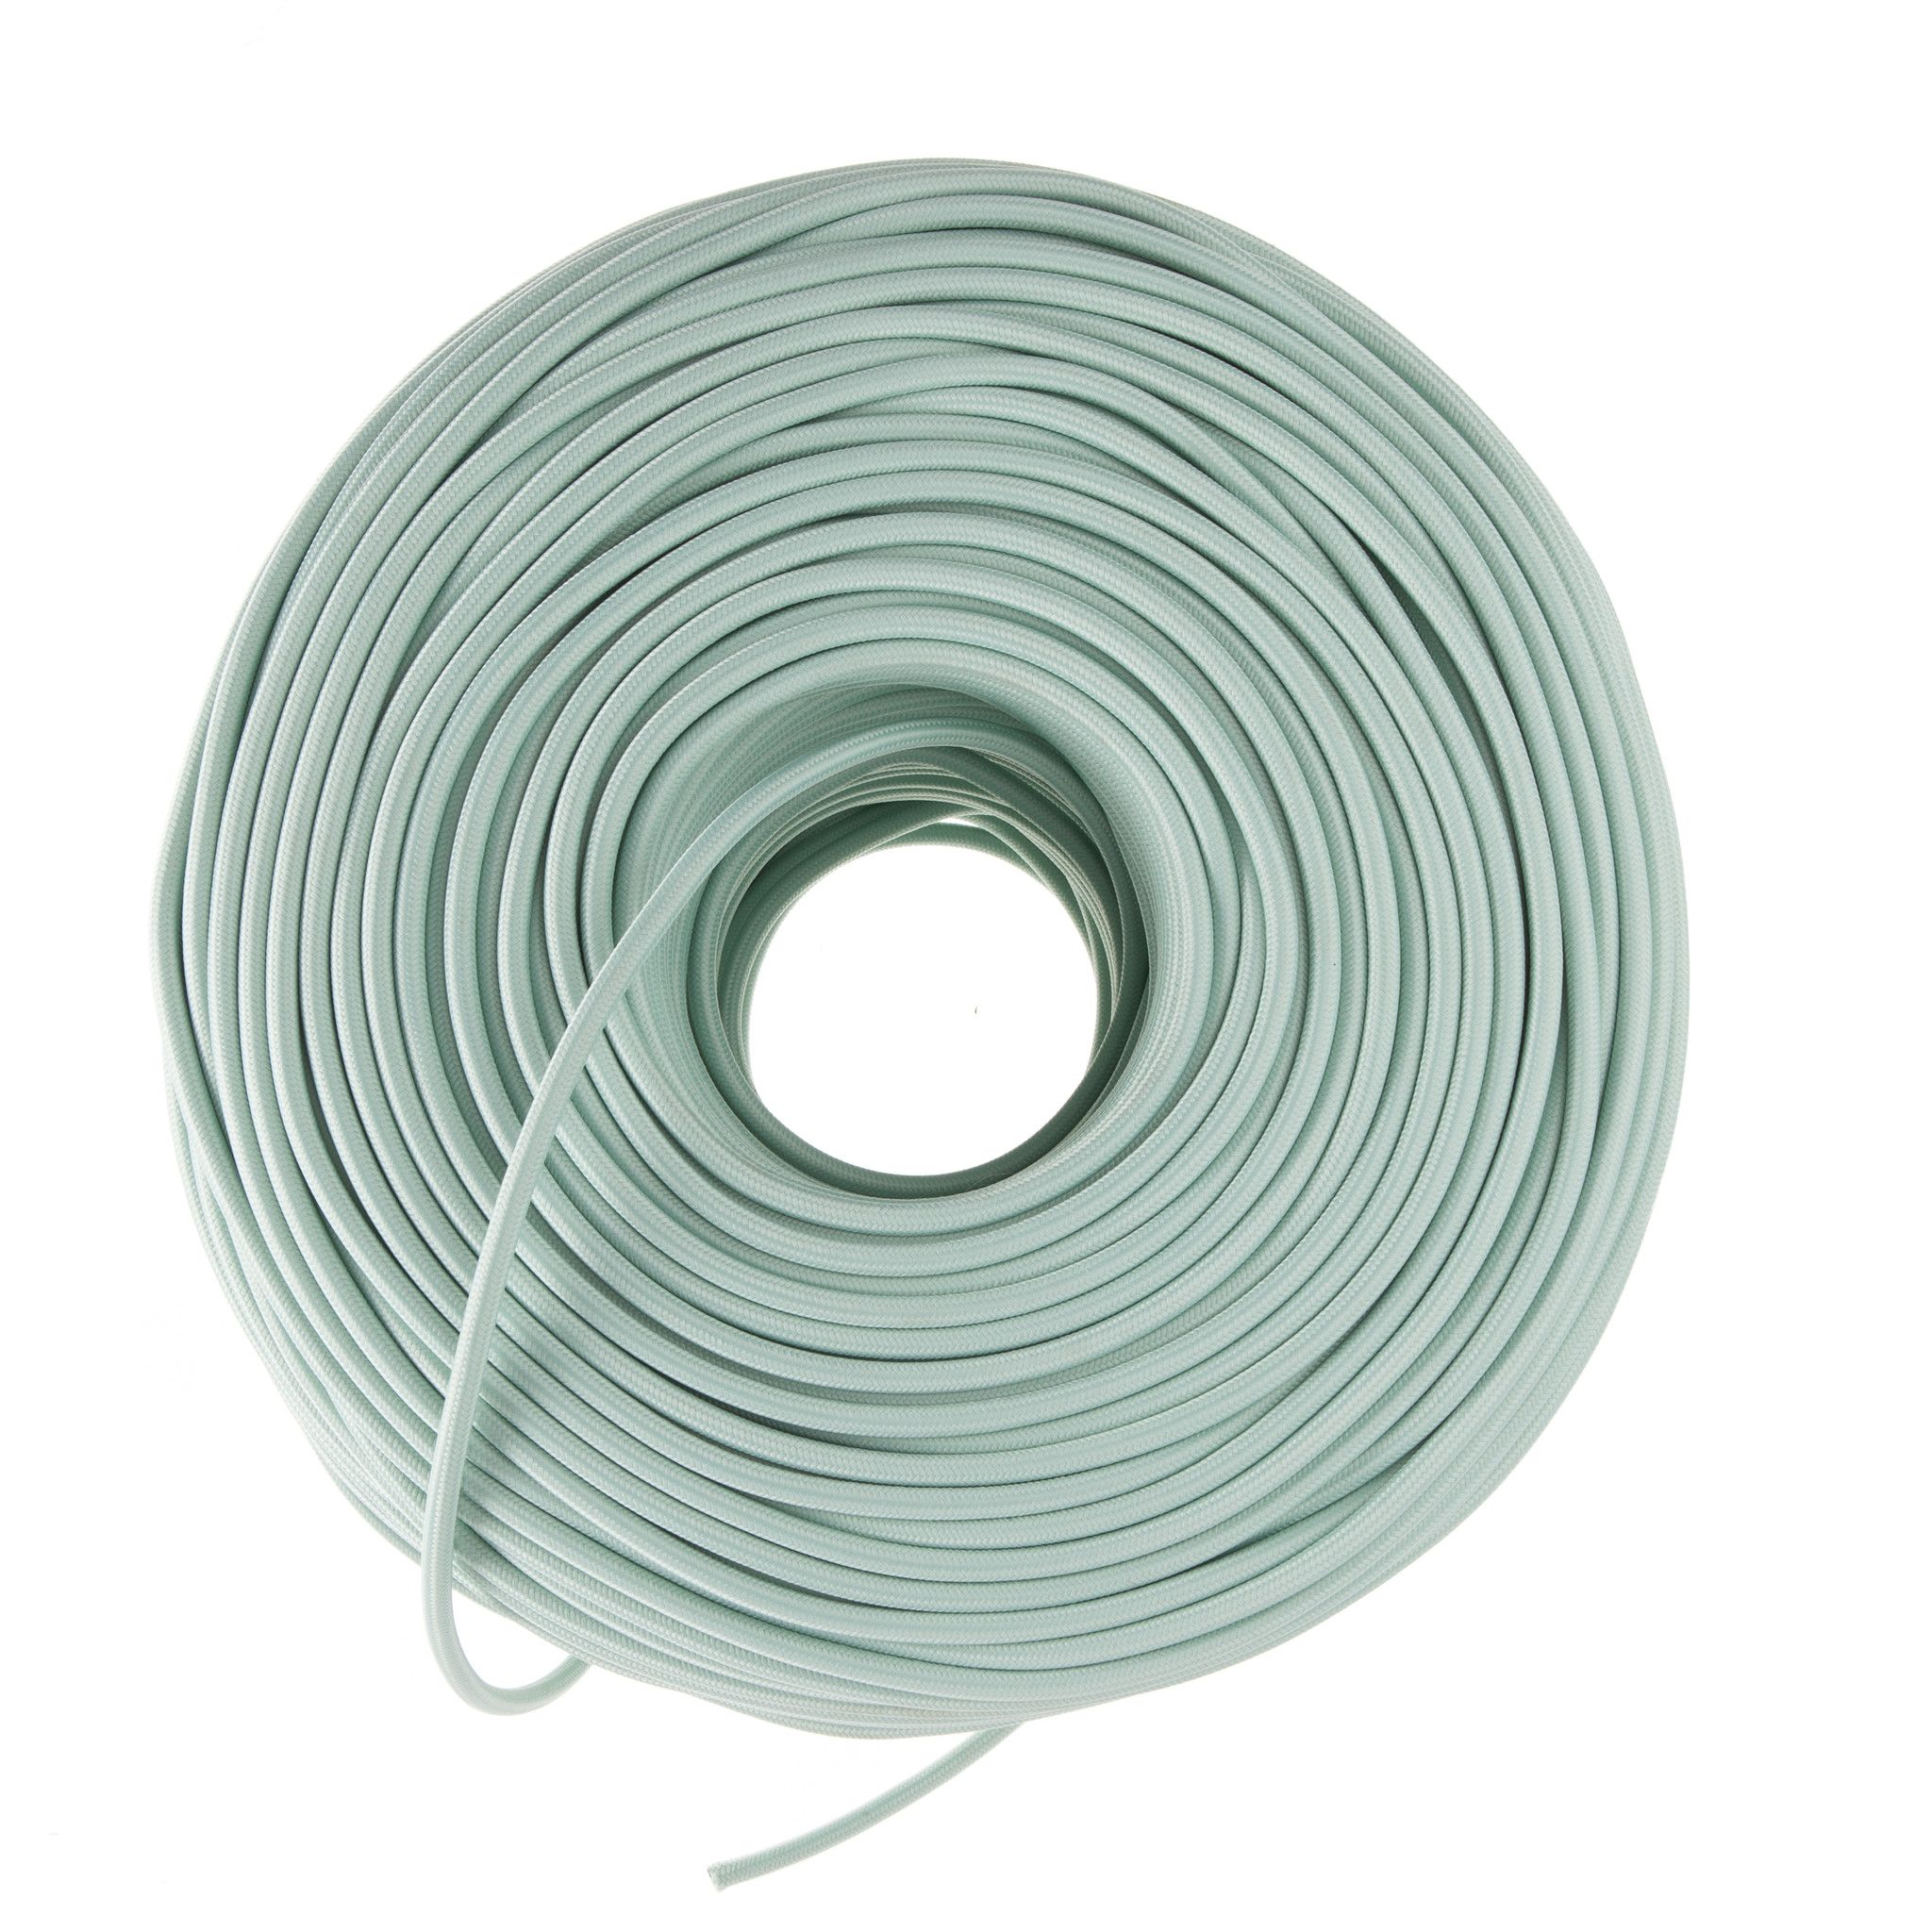 Cloth Covered Wire - Eucalyptus | Color Cord Company